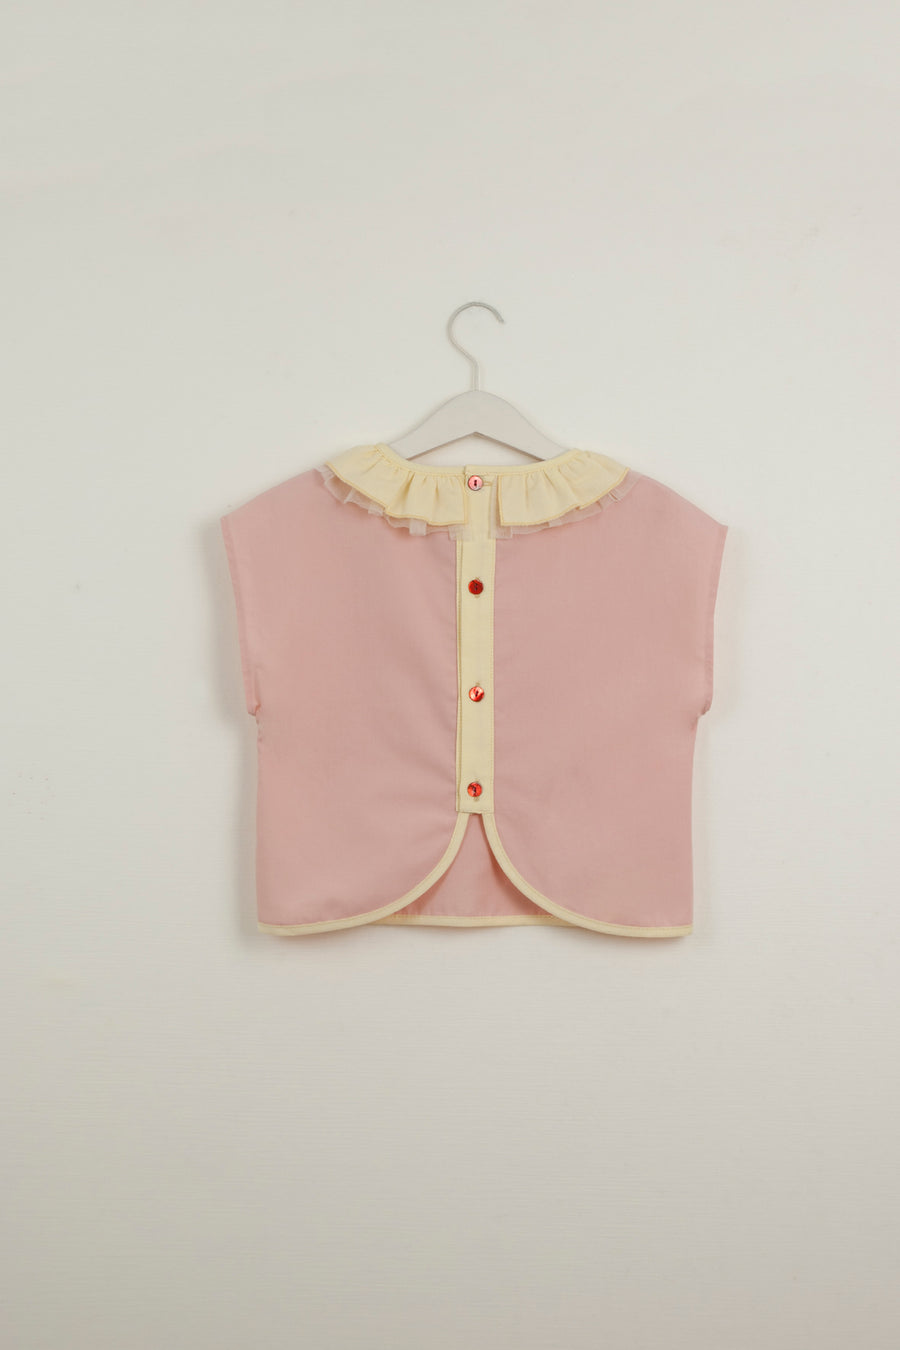 Mod. 18.2 Pink Shirt with Frilled Collar